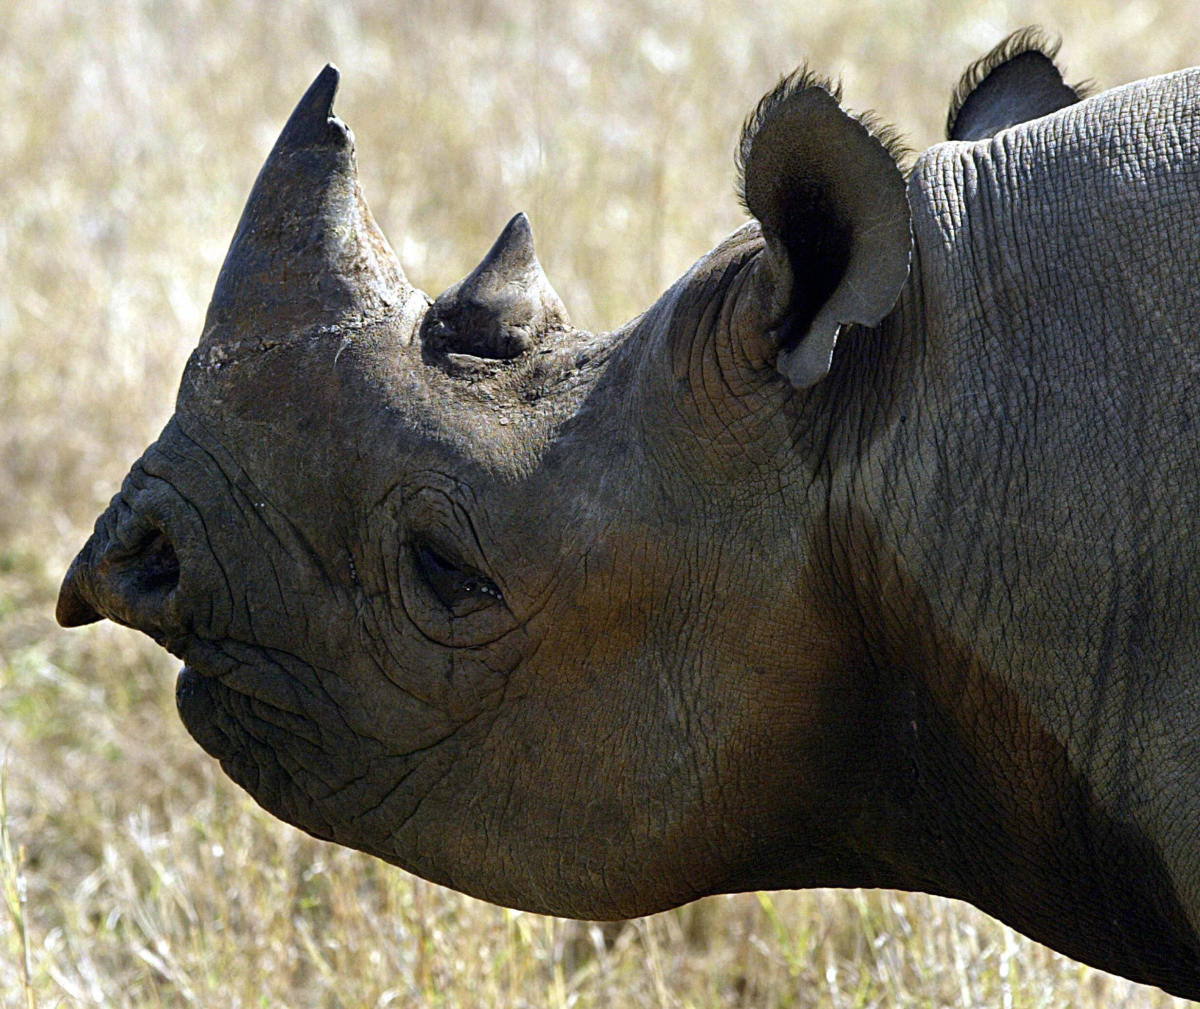 A black rhinoceros, like the 1959 Brazilian candidate.